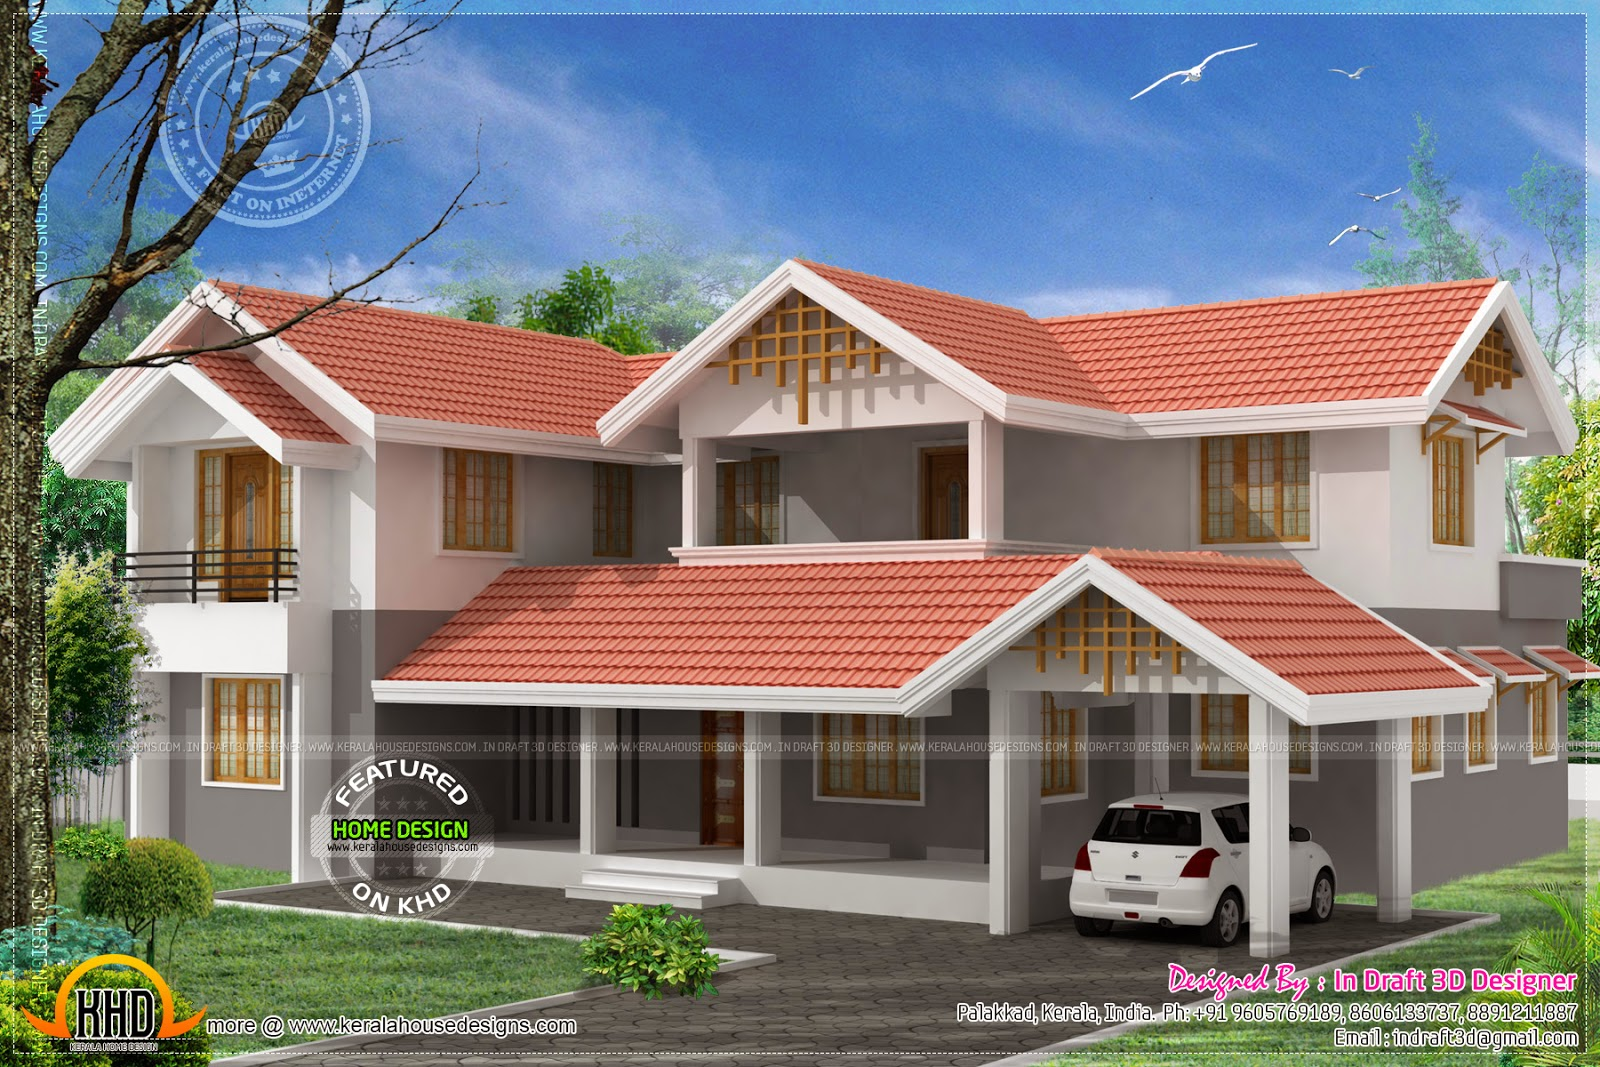 3D Home Design In 2860 Sq Feet Kerala Home Design And Floor Plans